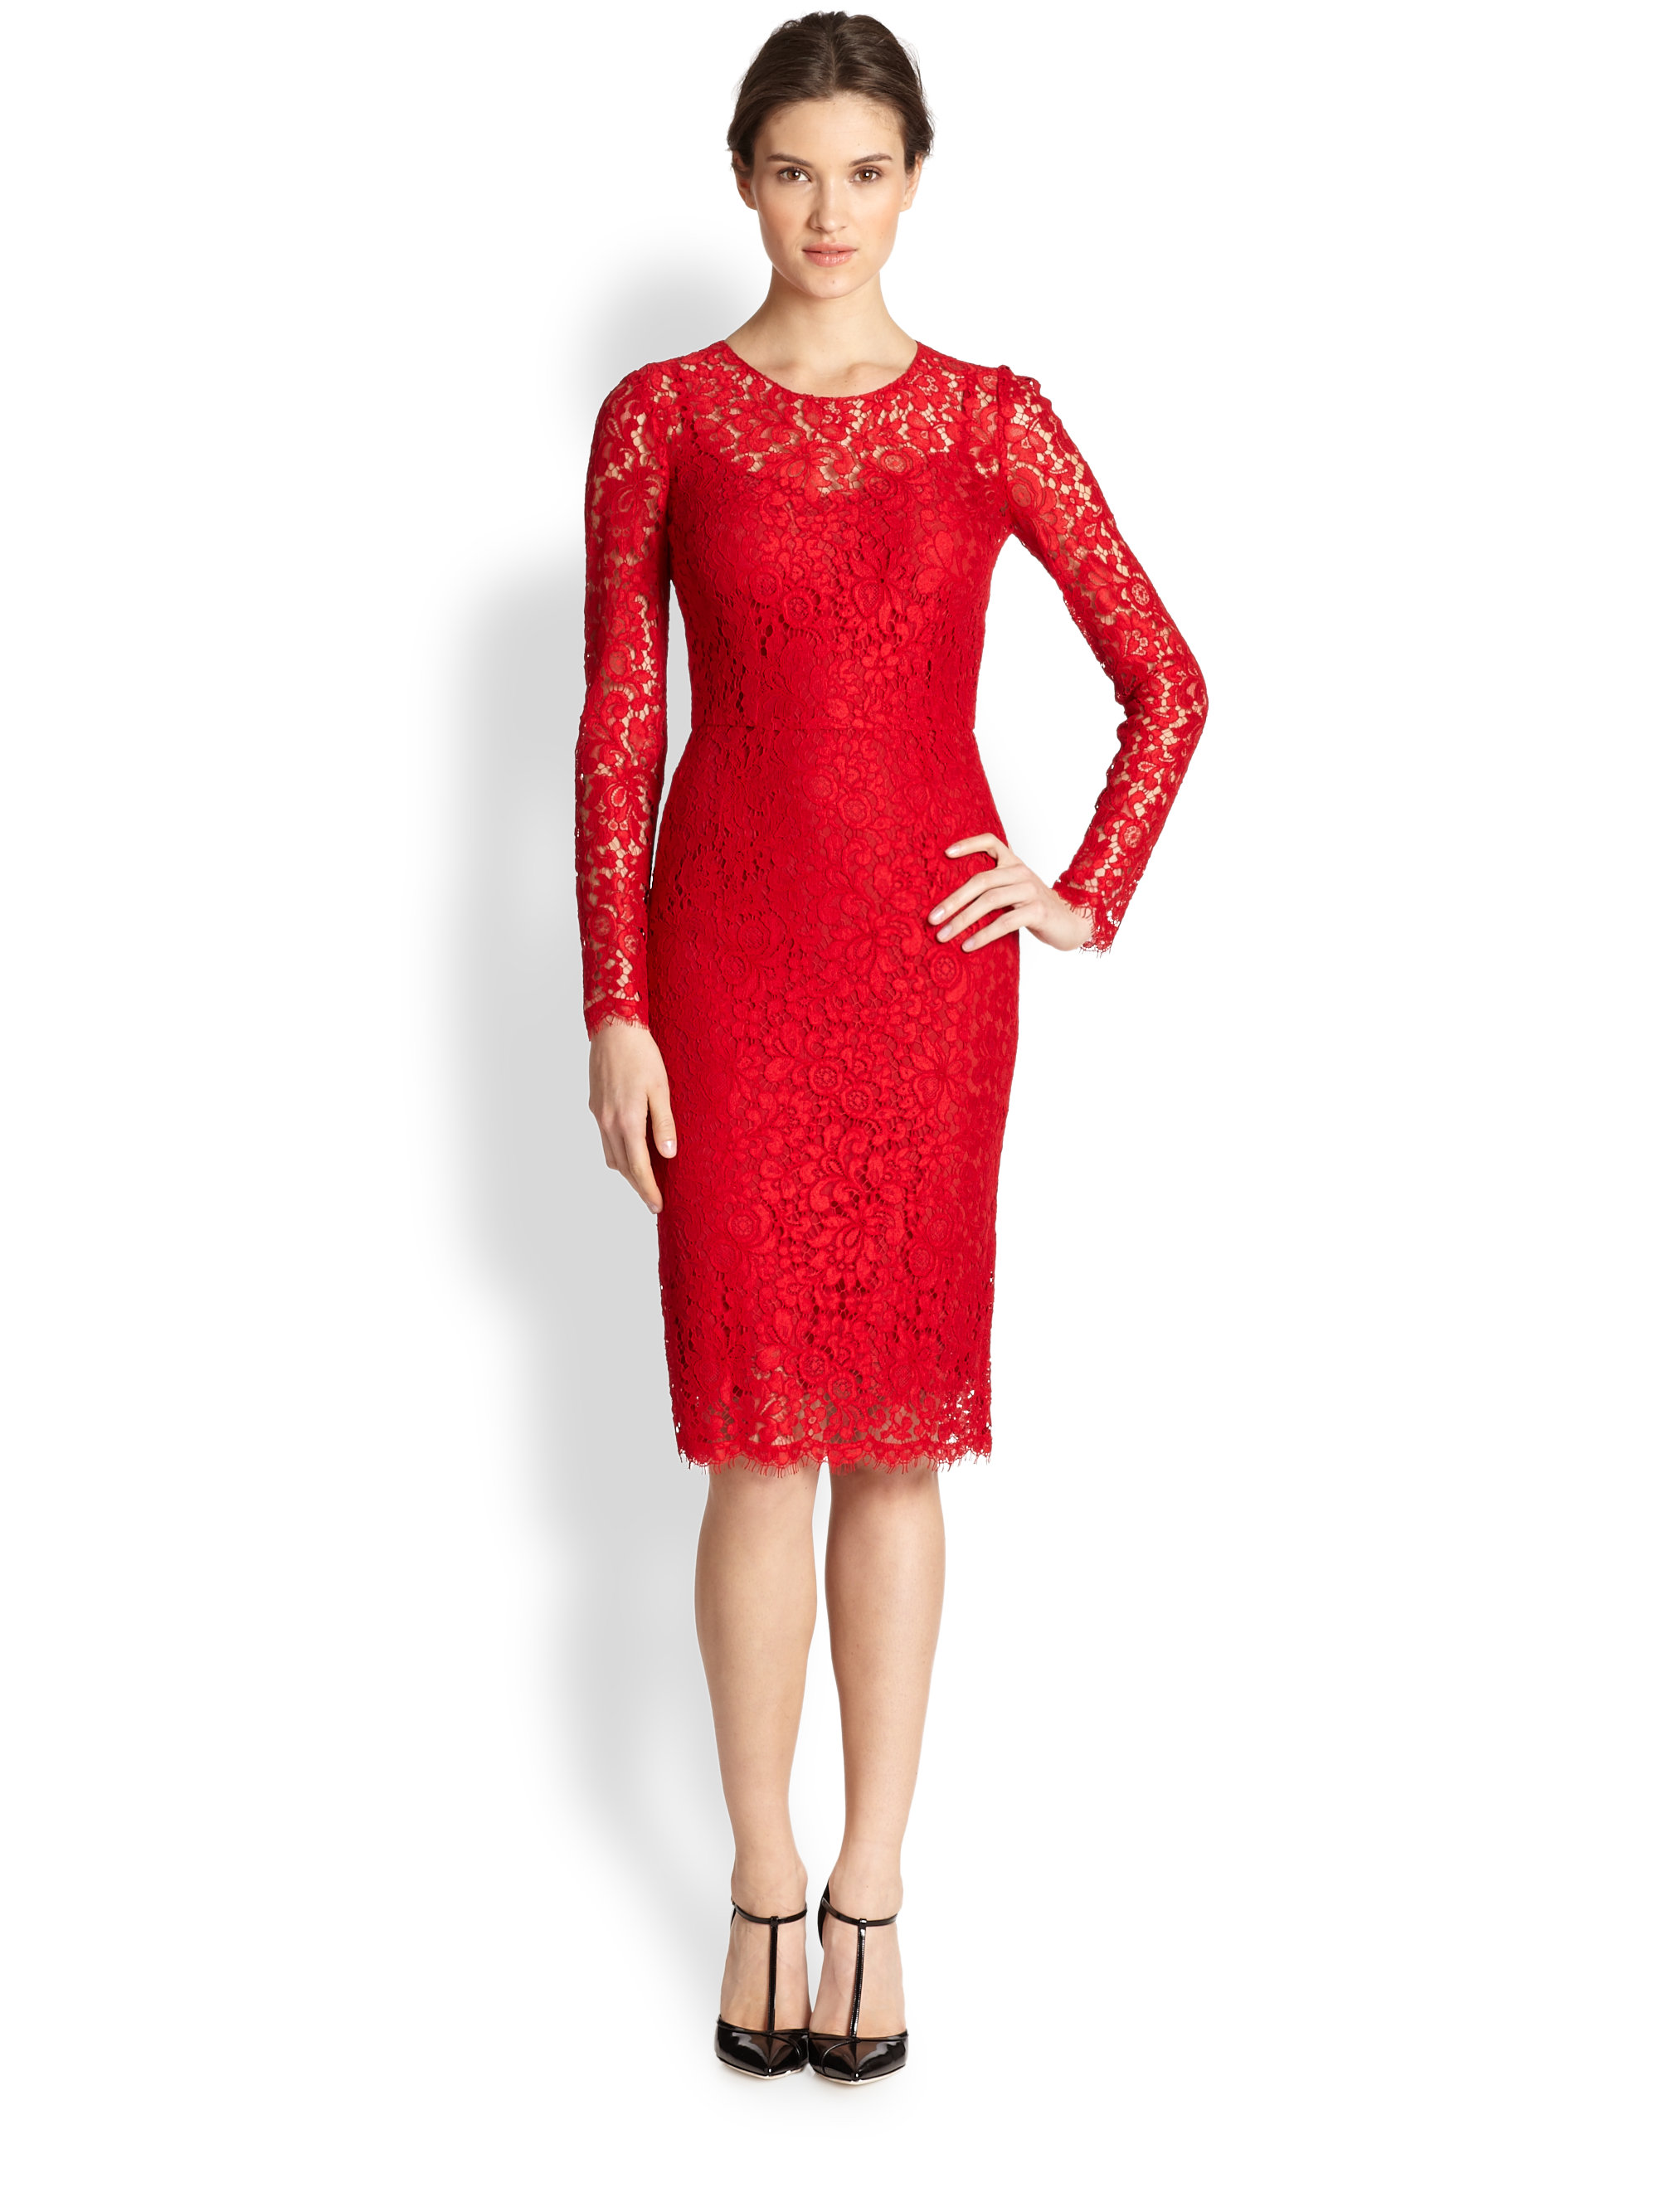 Dolce & gabbana Longsleeve Lace Dress in Red | Lyst